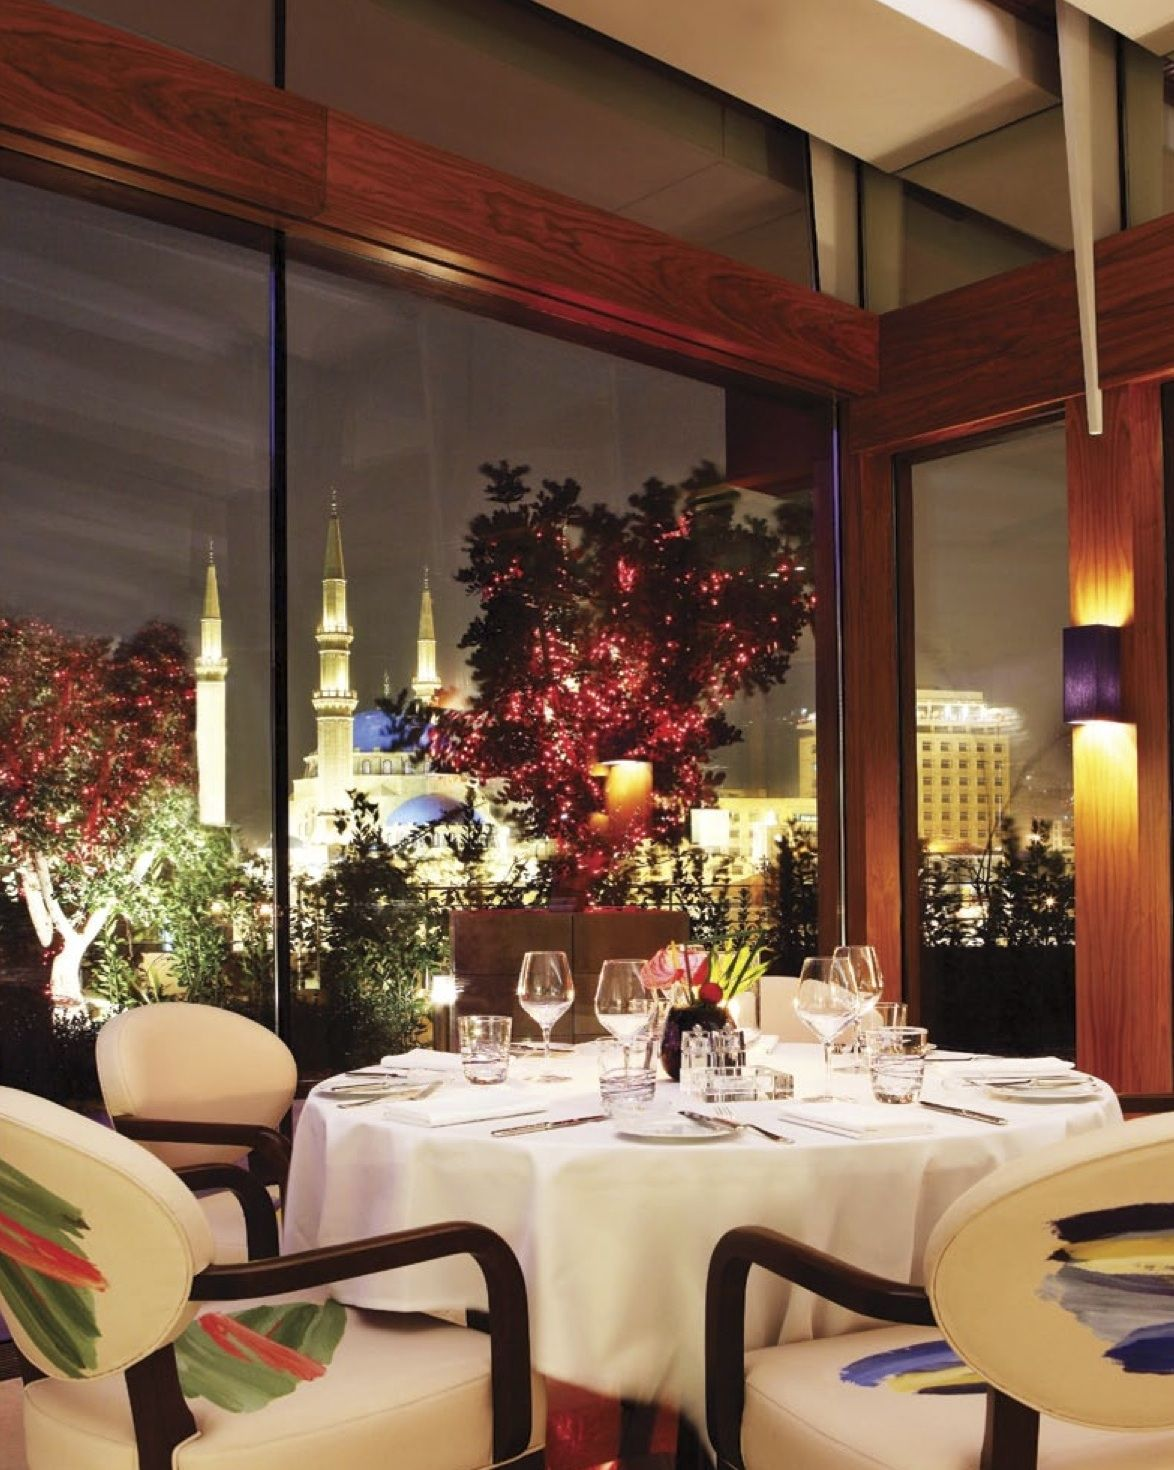 Indigo On The Roof Legray Hotel Restaurant Reviews Table Decorations Table Settings Decor